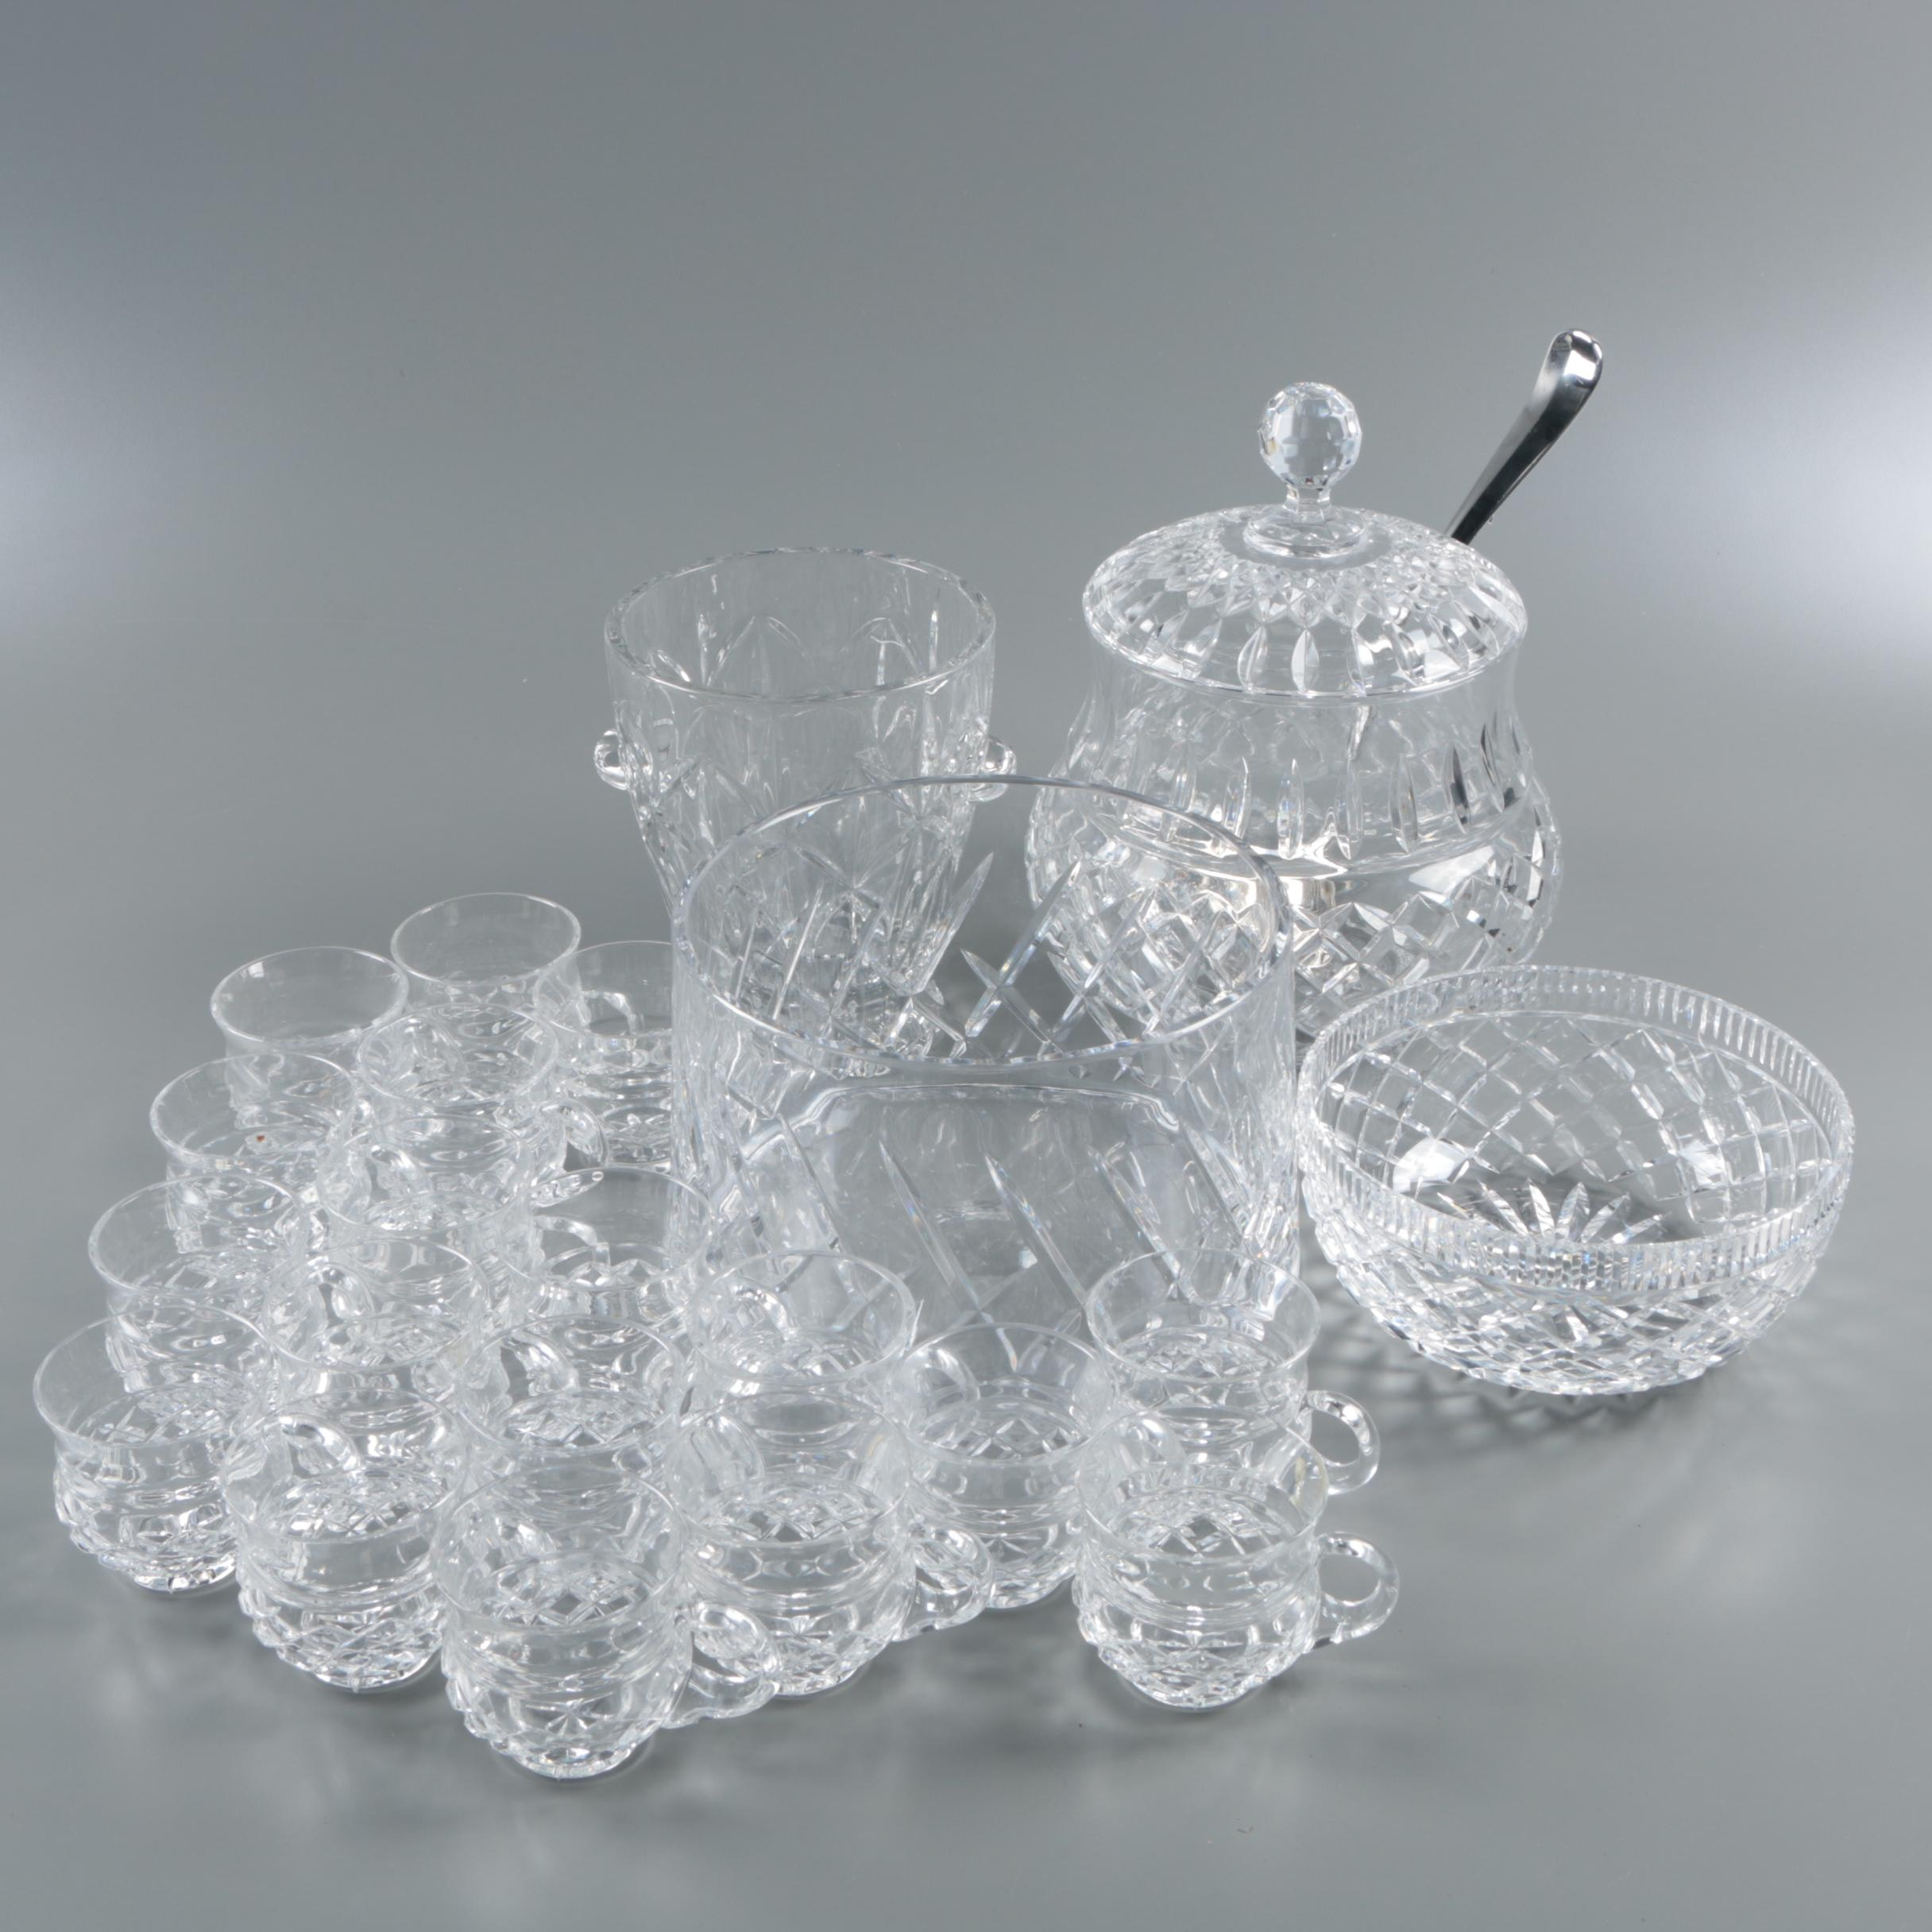 Crystal Punch Set with Cups and Cut Crystal Serveware With Waterford Crystal